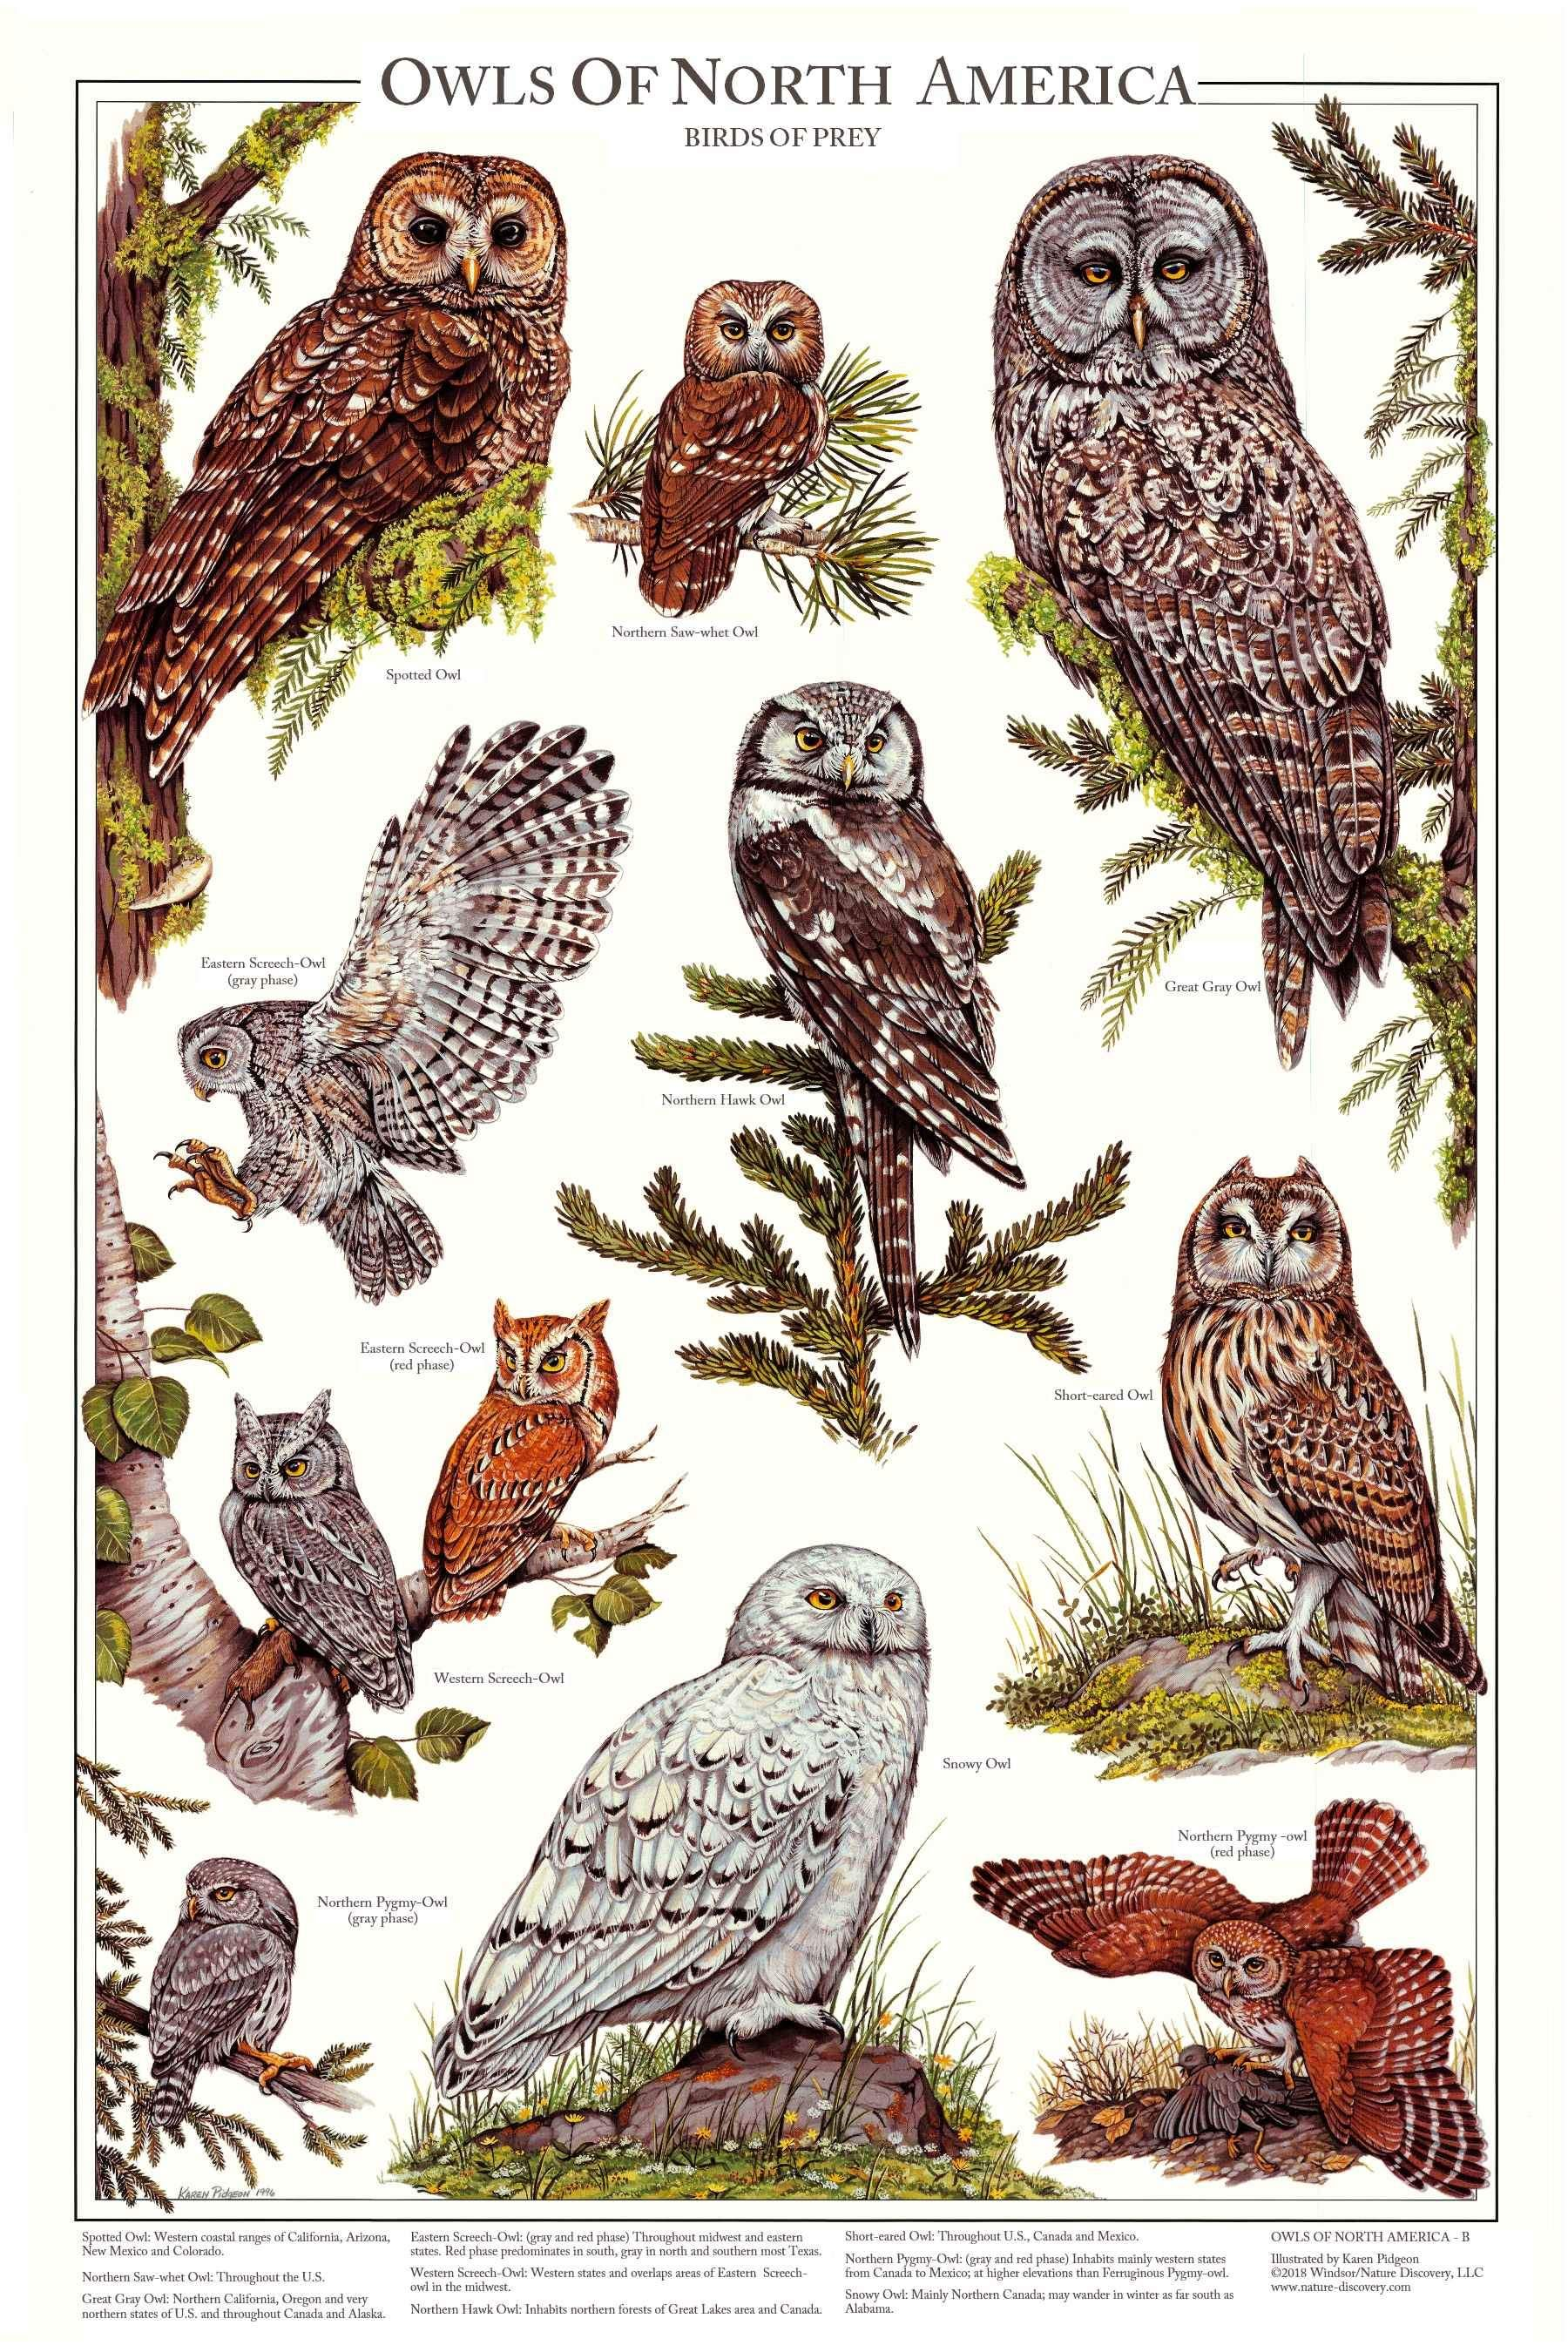 Owls of North America Poster/Identification Chart Vol 2 ...